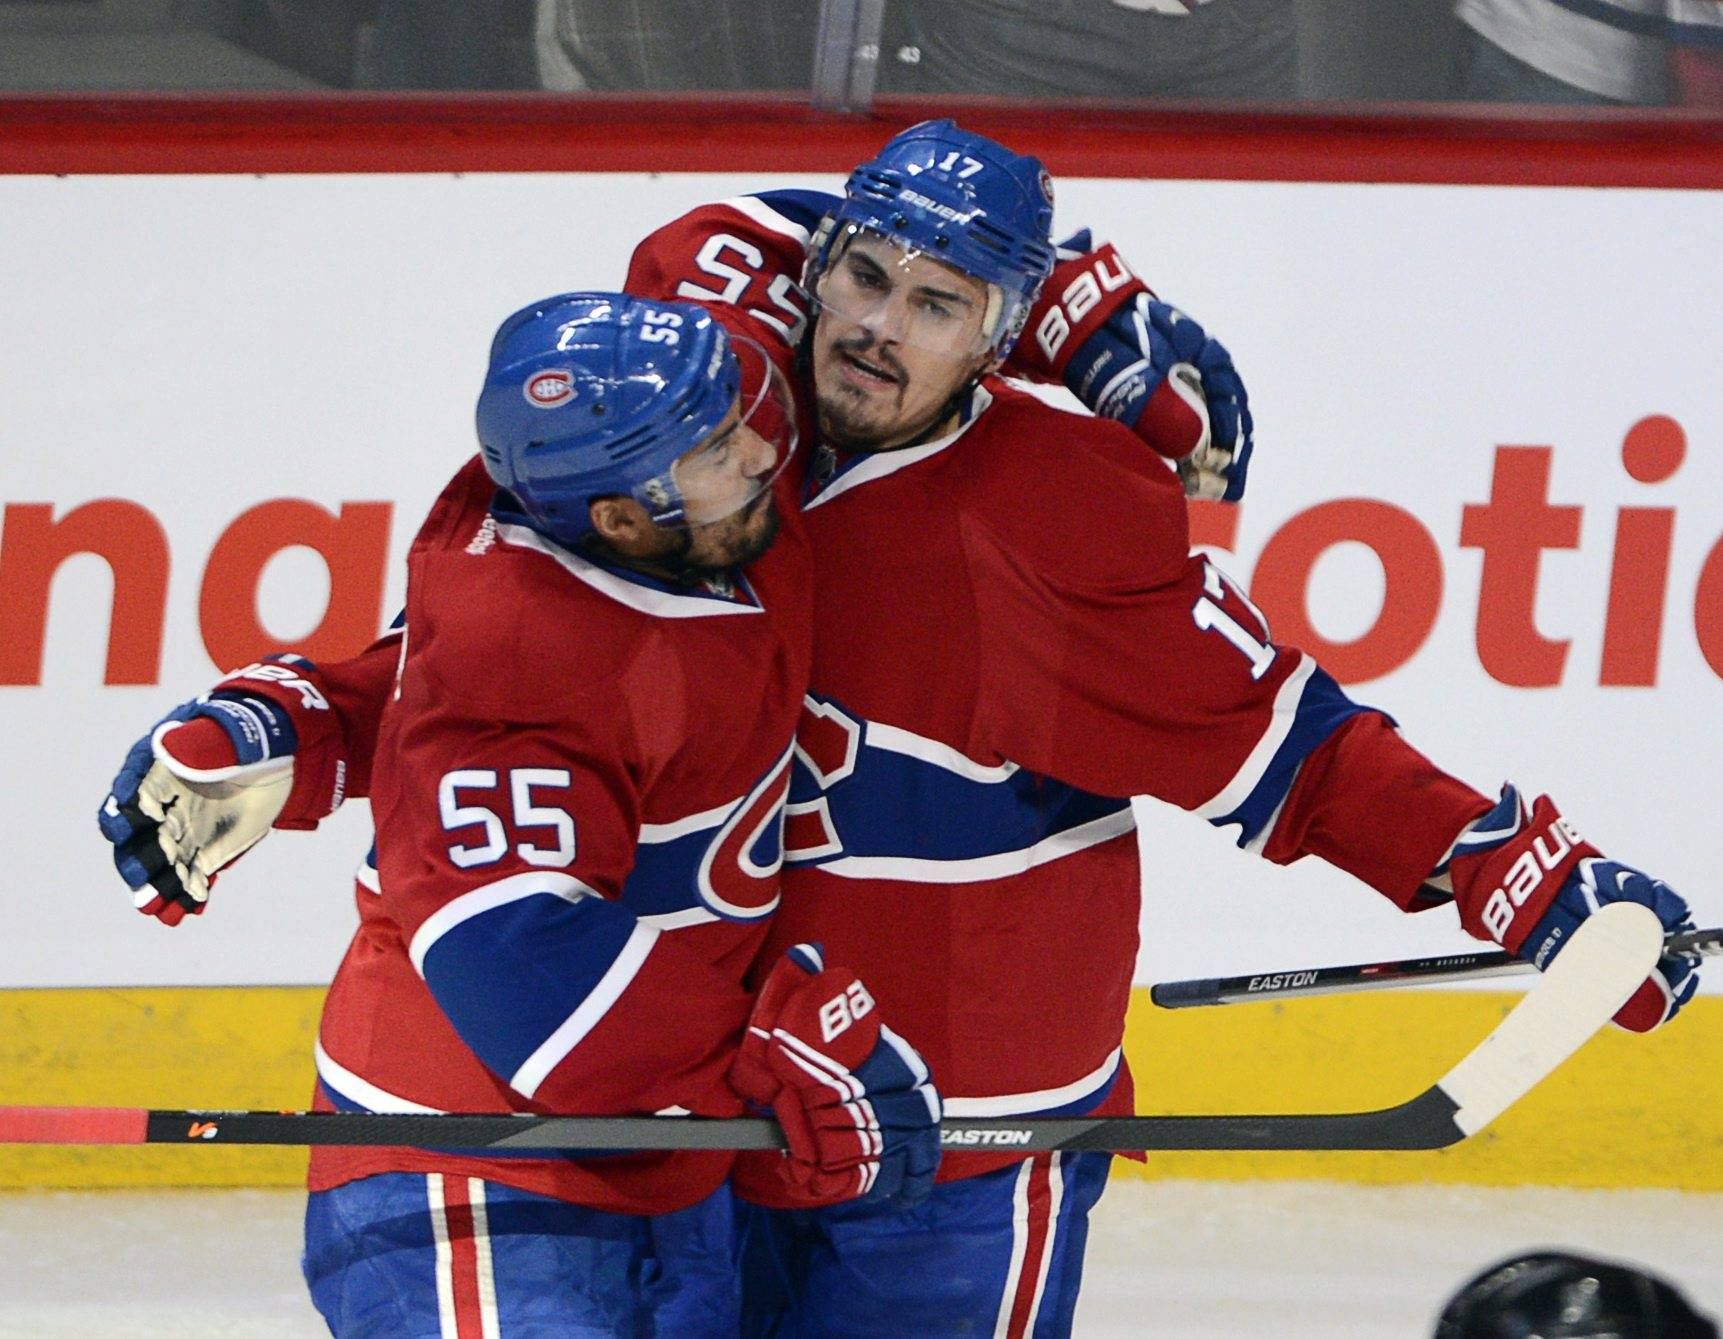 Rene Bourque scored three goals and the Montreal Canadiens chased goalie Henrik Lundqvist and defeated the New York Rangers 7-4 on Tuesday to stave off elimination in the Eastern Conference final.The Rangers, who lead the best-of-seven series 3-2, will have another chance to earn a trip to the Stanley Cup final in Game 6 on Thursday night in New York.